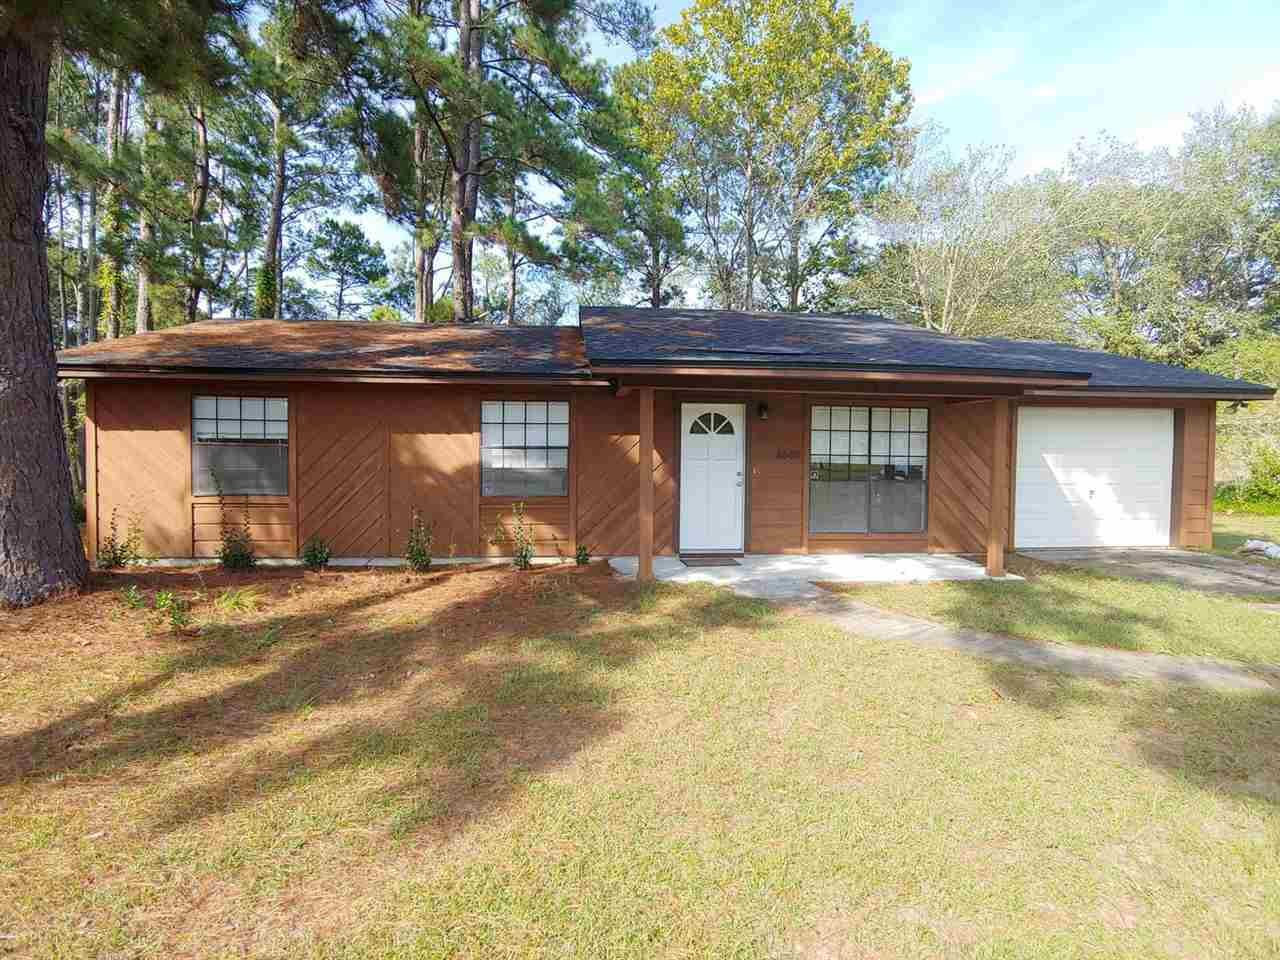 Photo for 8600 Chatam Court, TALLAHASSEE, FL 32311 (MLS # 313359)